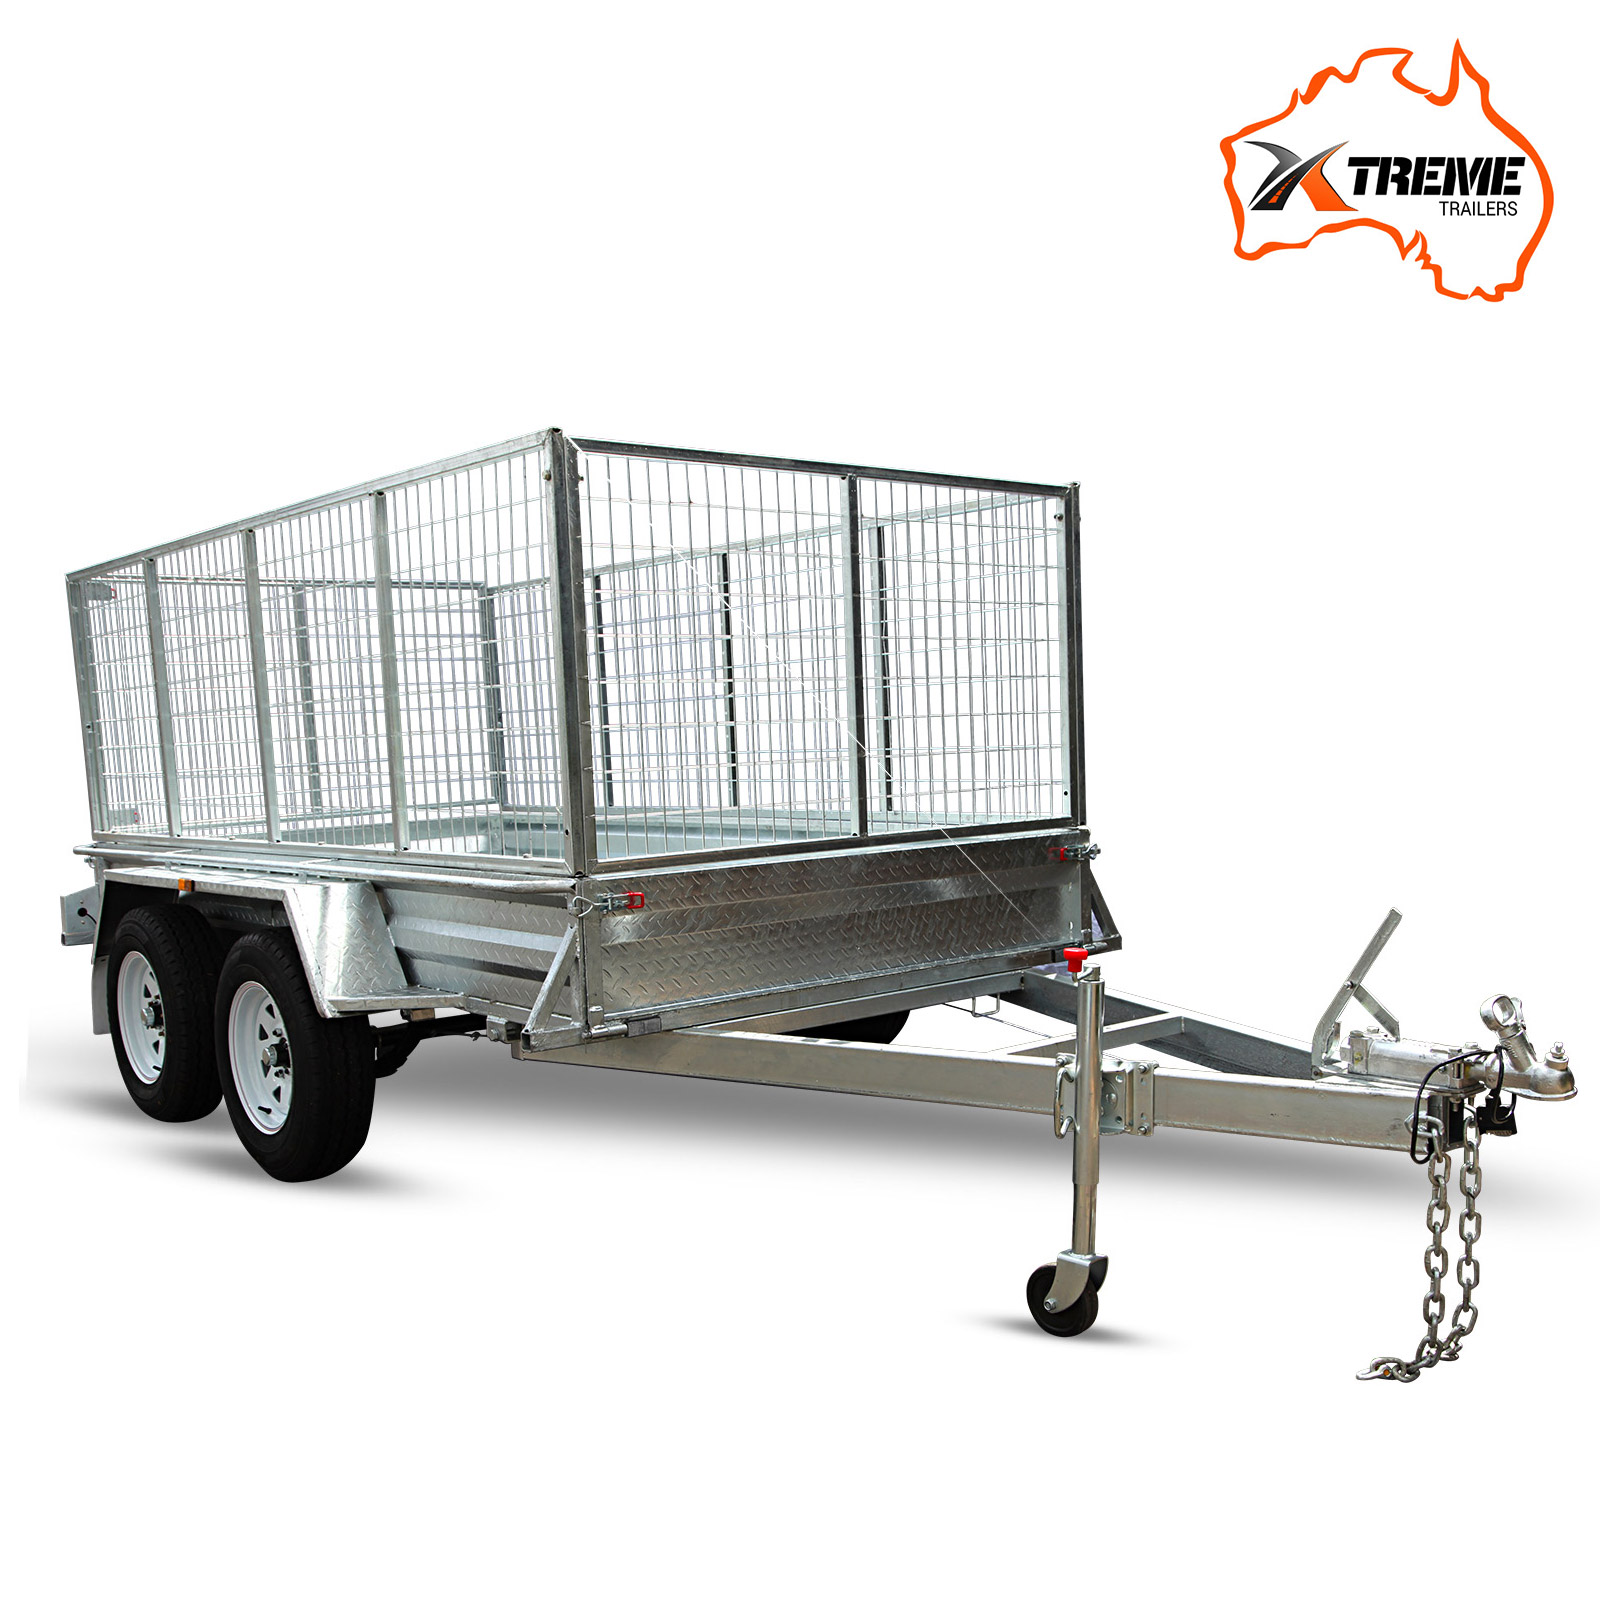 New XTREME 8x6 Tandem Box Trailer 900MM Cage Fully Welded